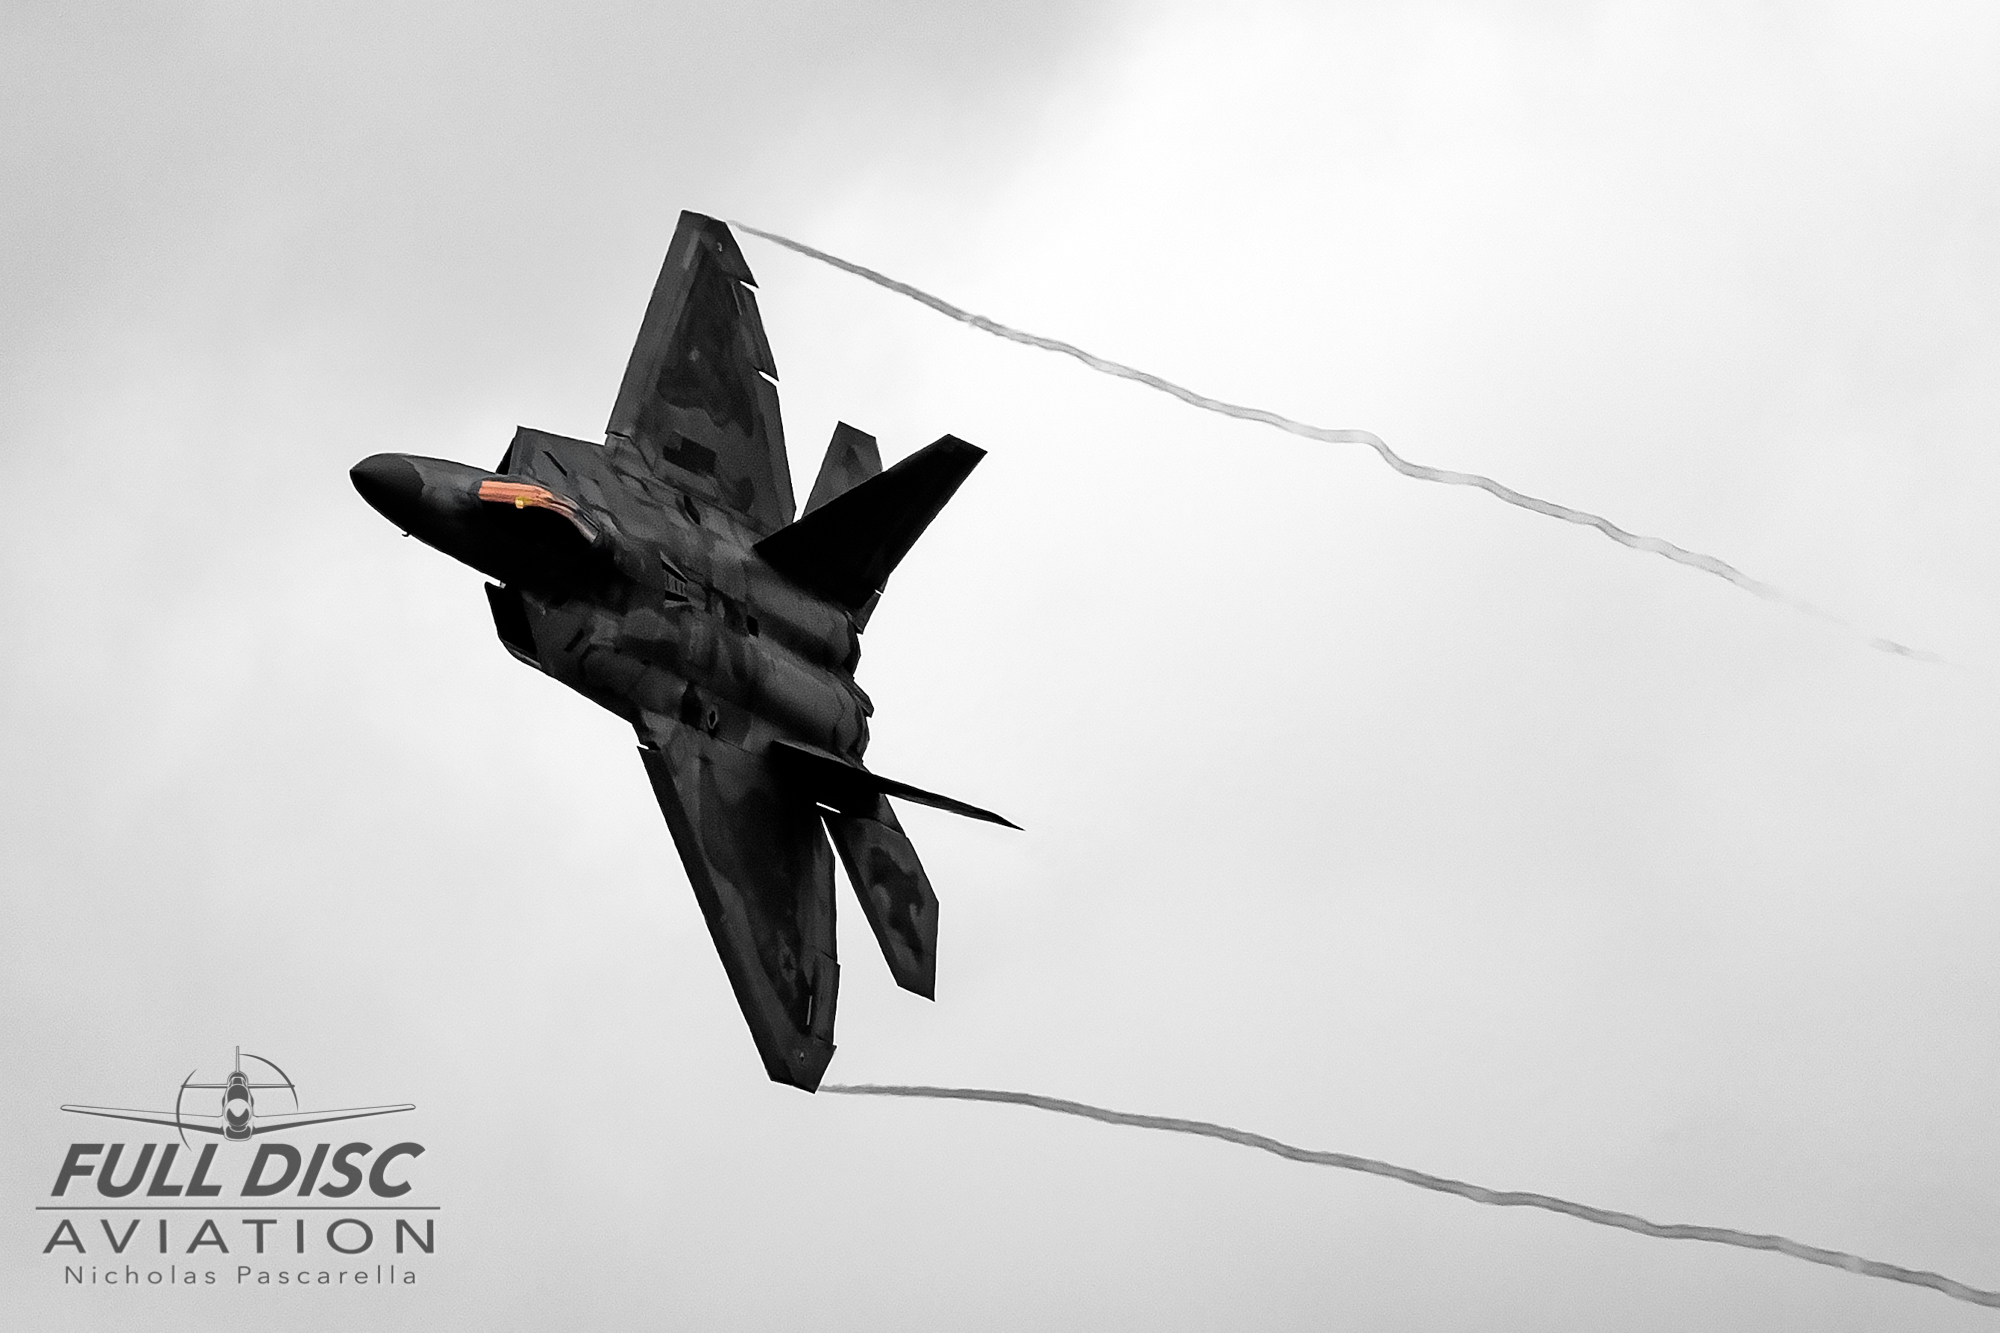 f22_nickpascarella_fulldiscaviation_raptor_vapor.jpg